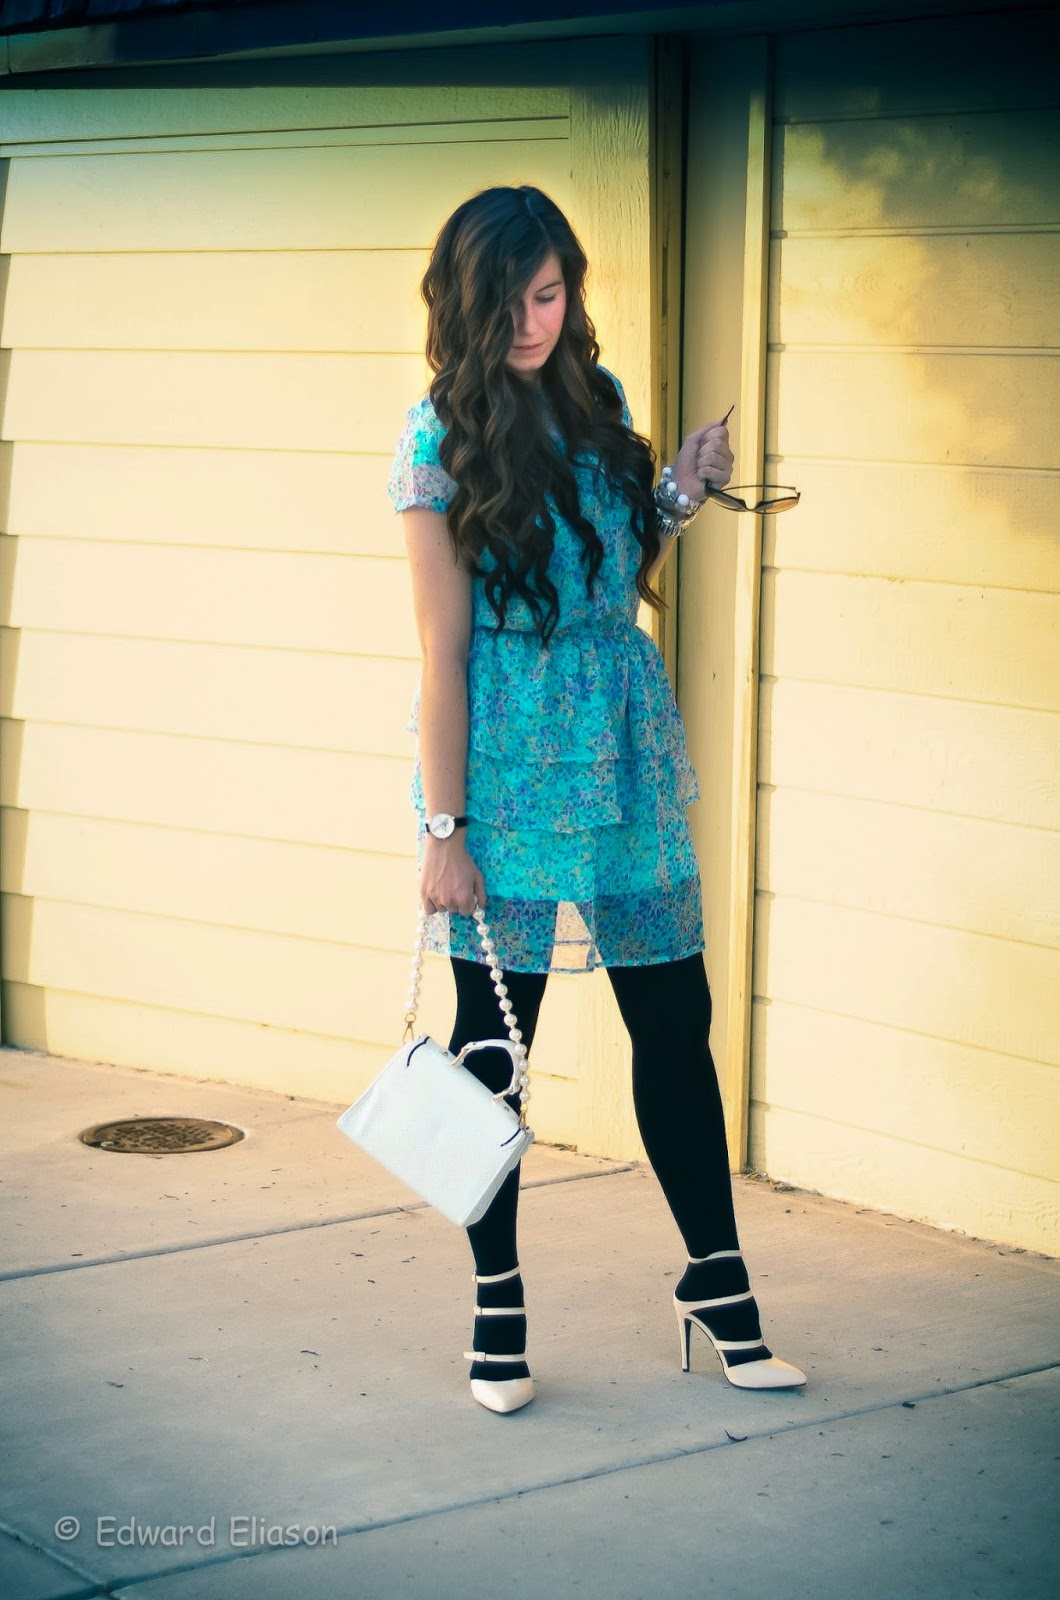 the girl that loves, mint dress, candy colored dress, holiday bvld, heels, pointed heels, ami clubwear, ami clubwear heels, blue dress,